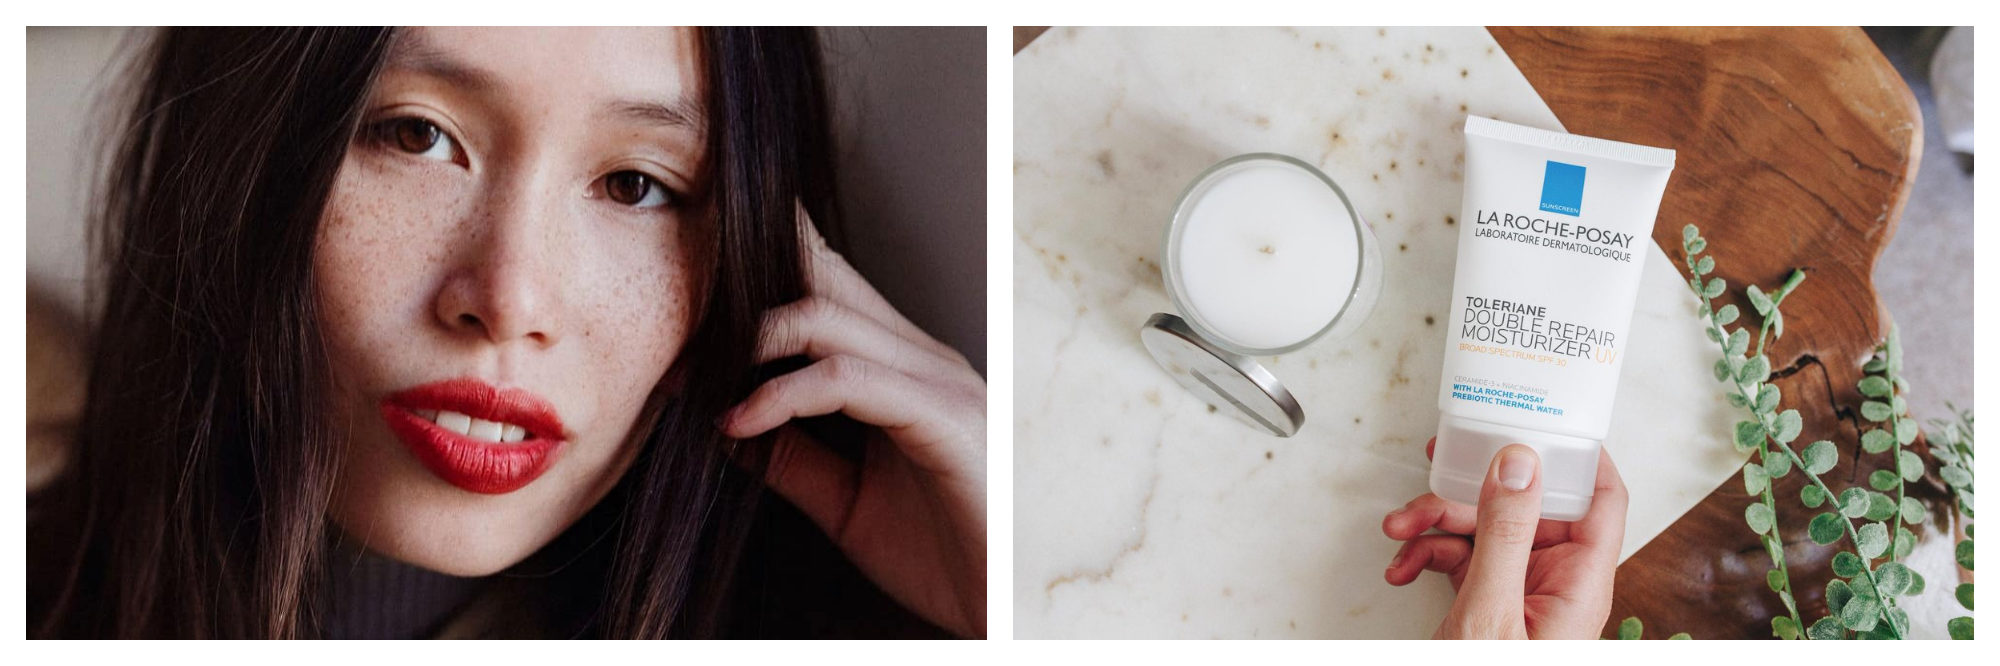 Girl with black hair, freckles and red lipstick. La Roche-Posay Toleriane Double Repair Moisturiser on wooden and marble table with leaves